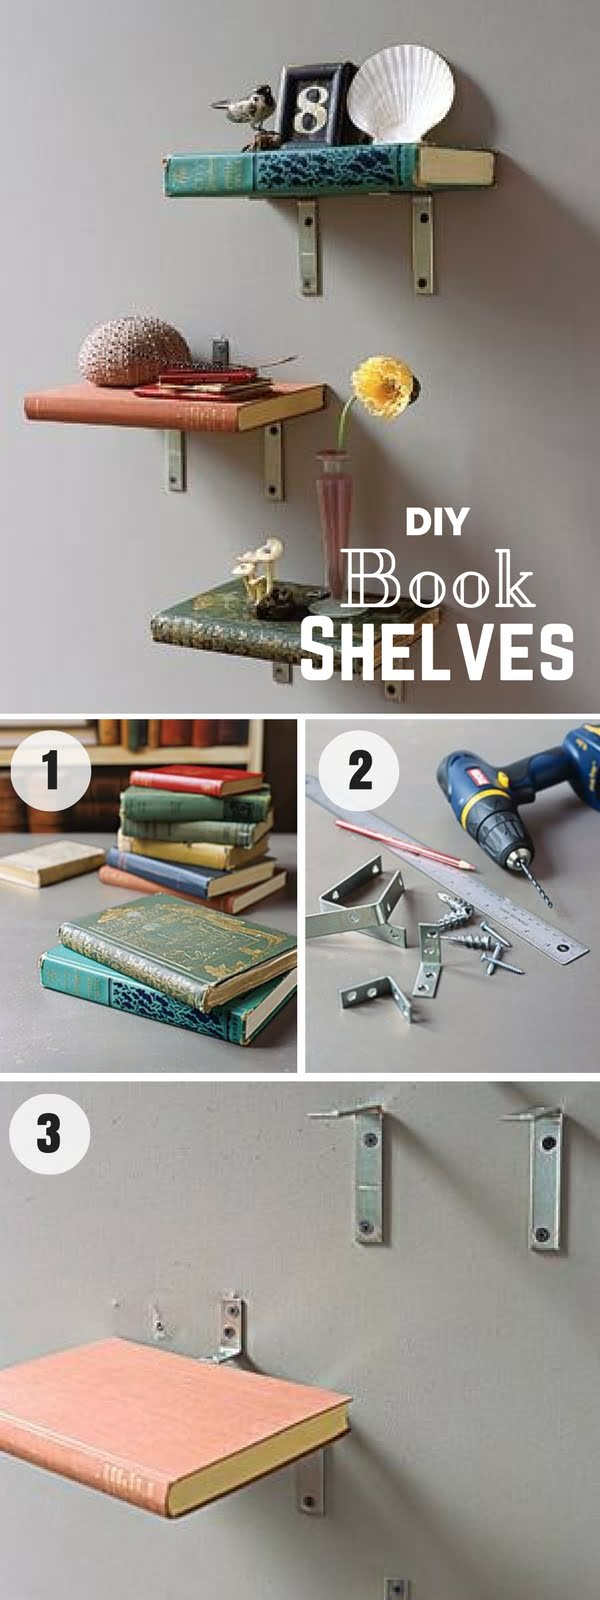 16 Beautiful DIY Bedroom Decor Ideas That Will Inspire You - Check out how to make easy DIY Vintage Book Shelves for bedroom decor